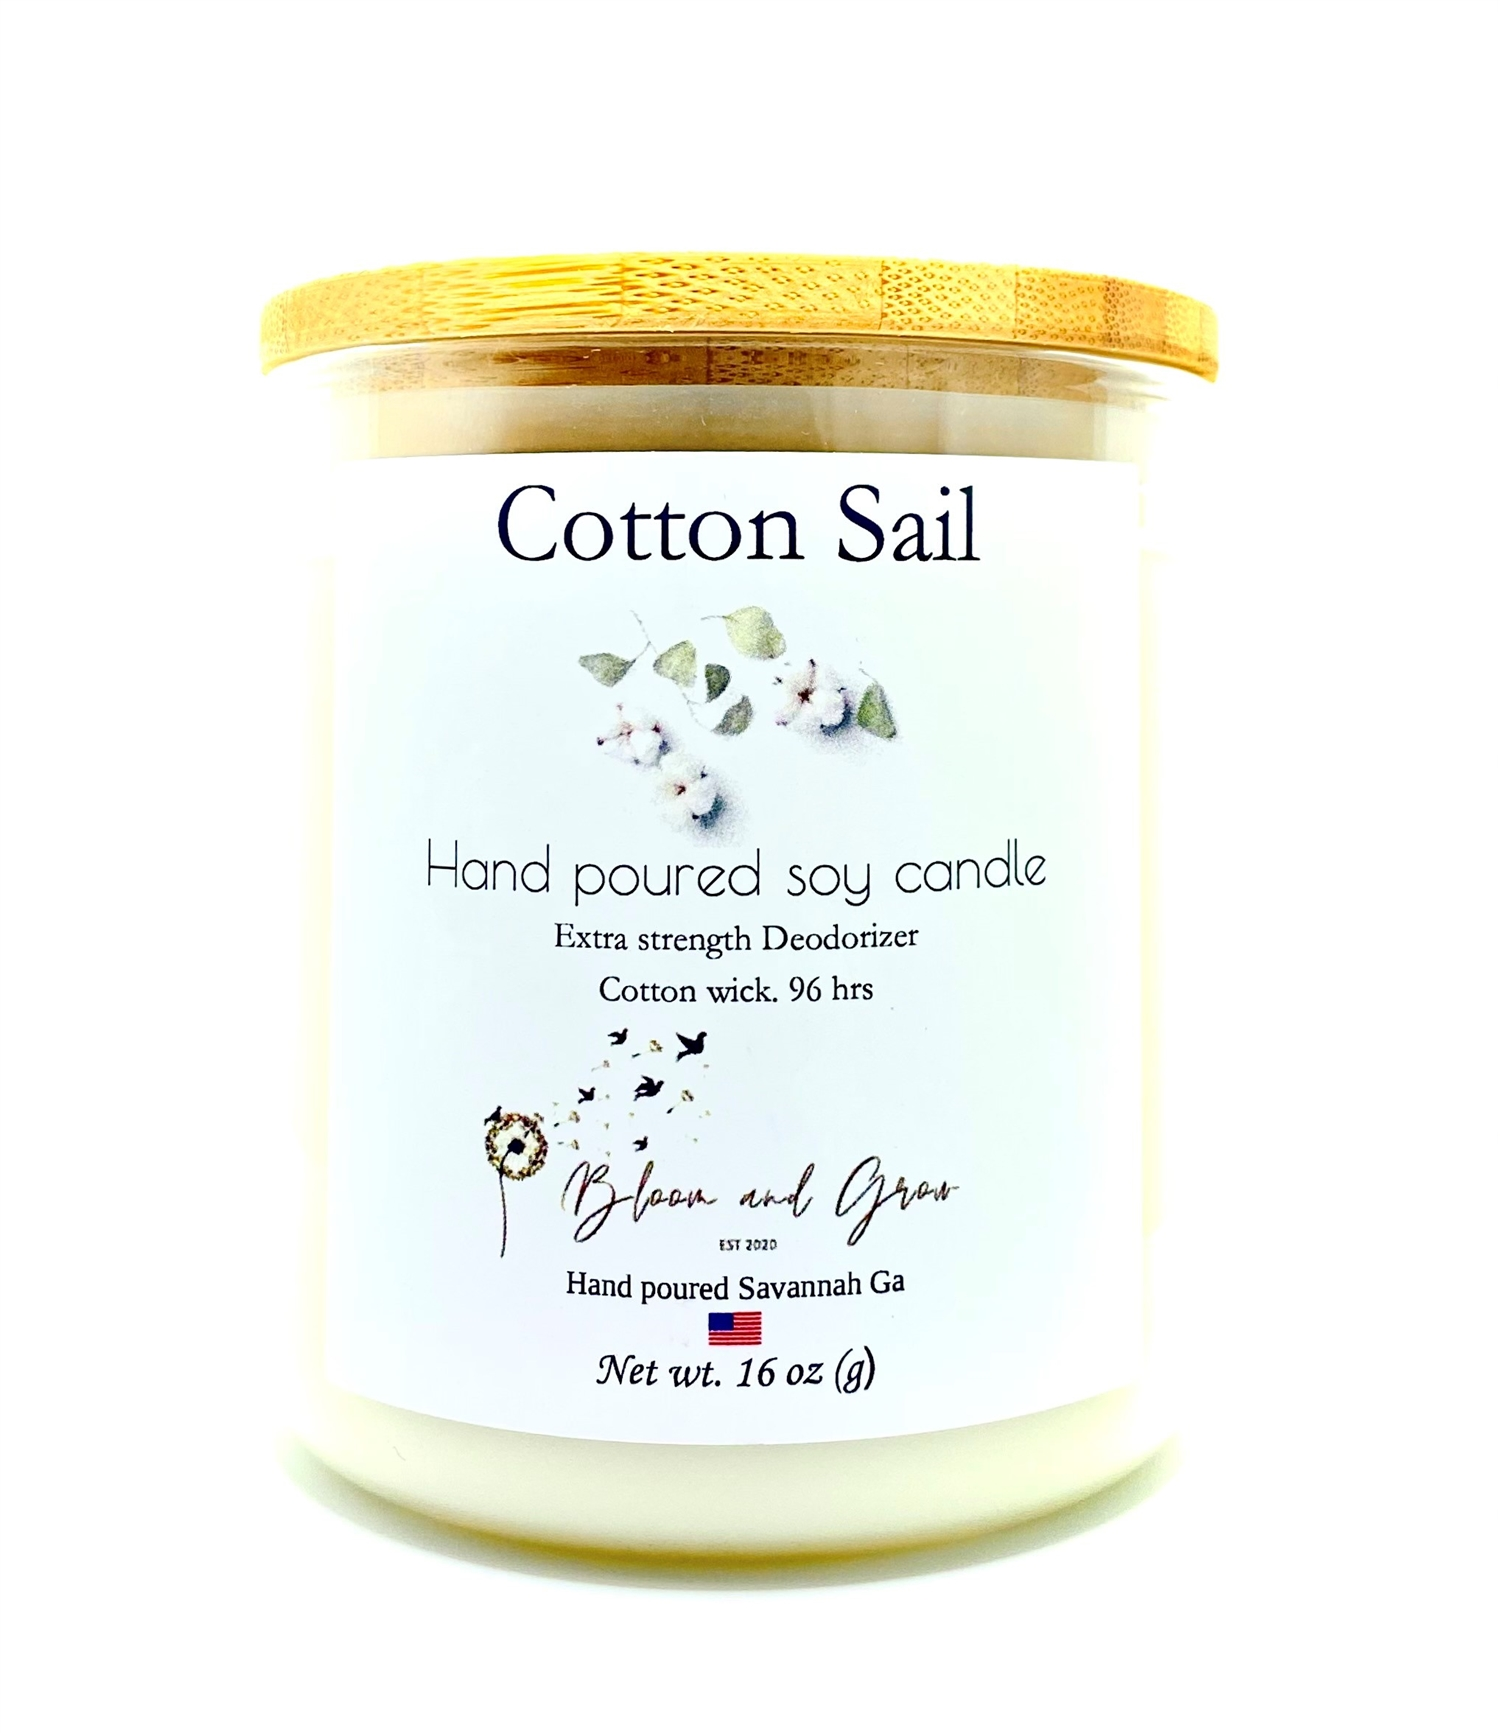 All Natural Soy & Coconut Artisan Candles - 12oz